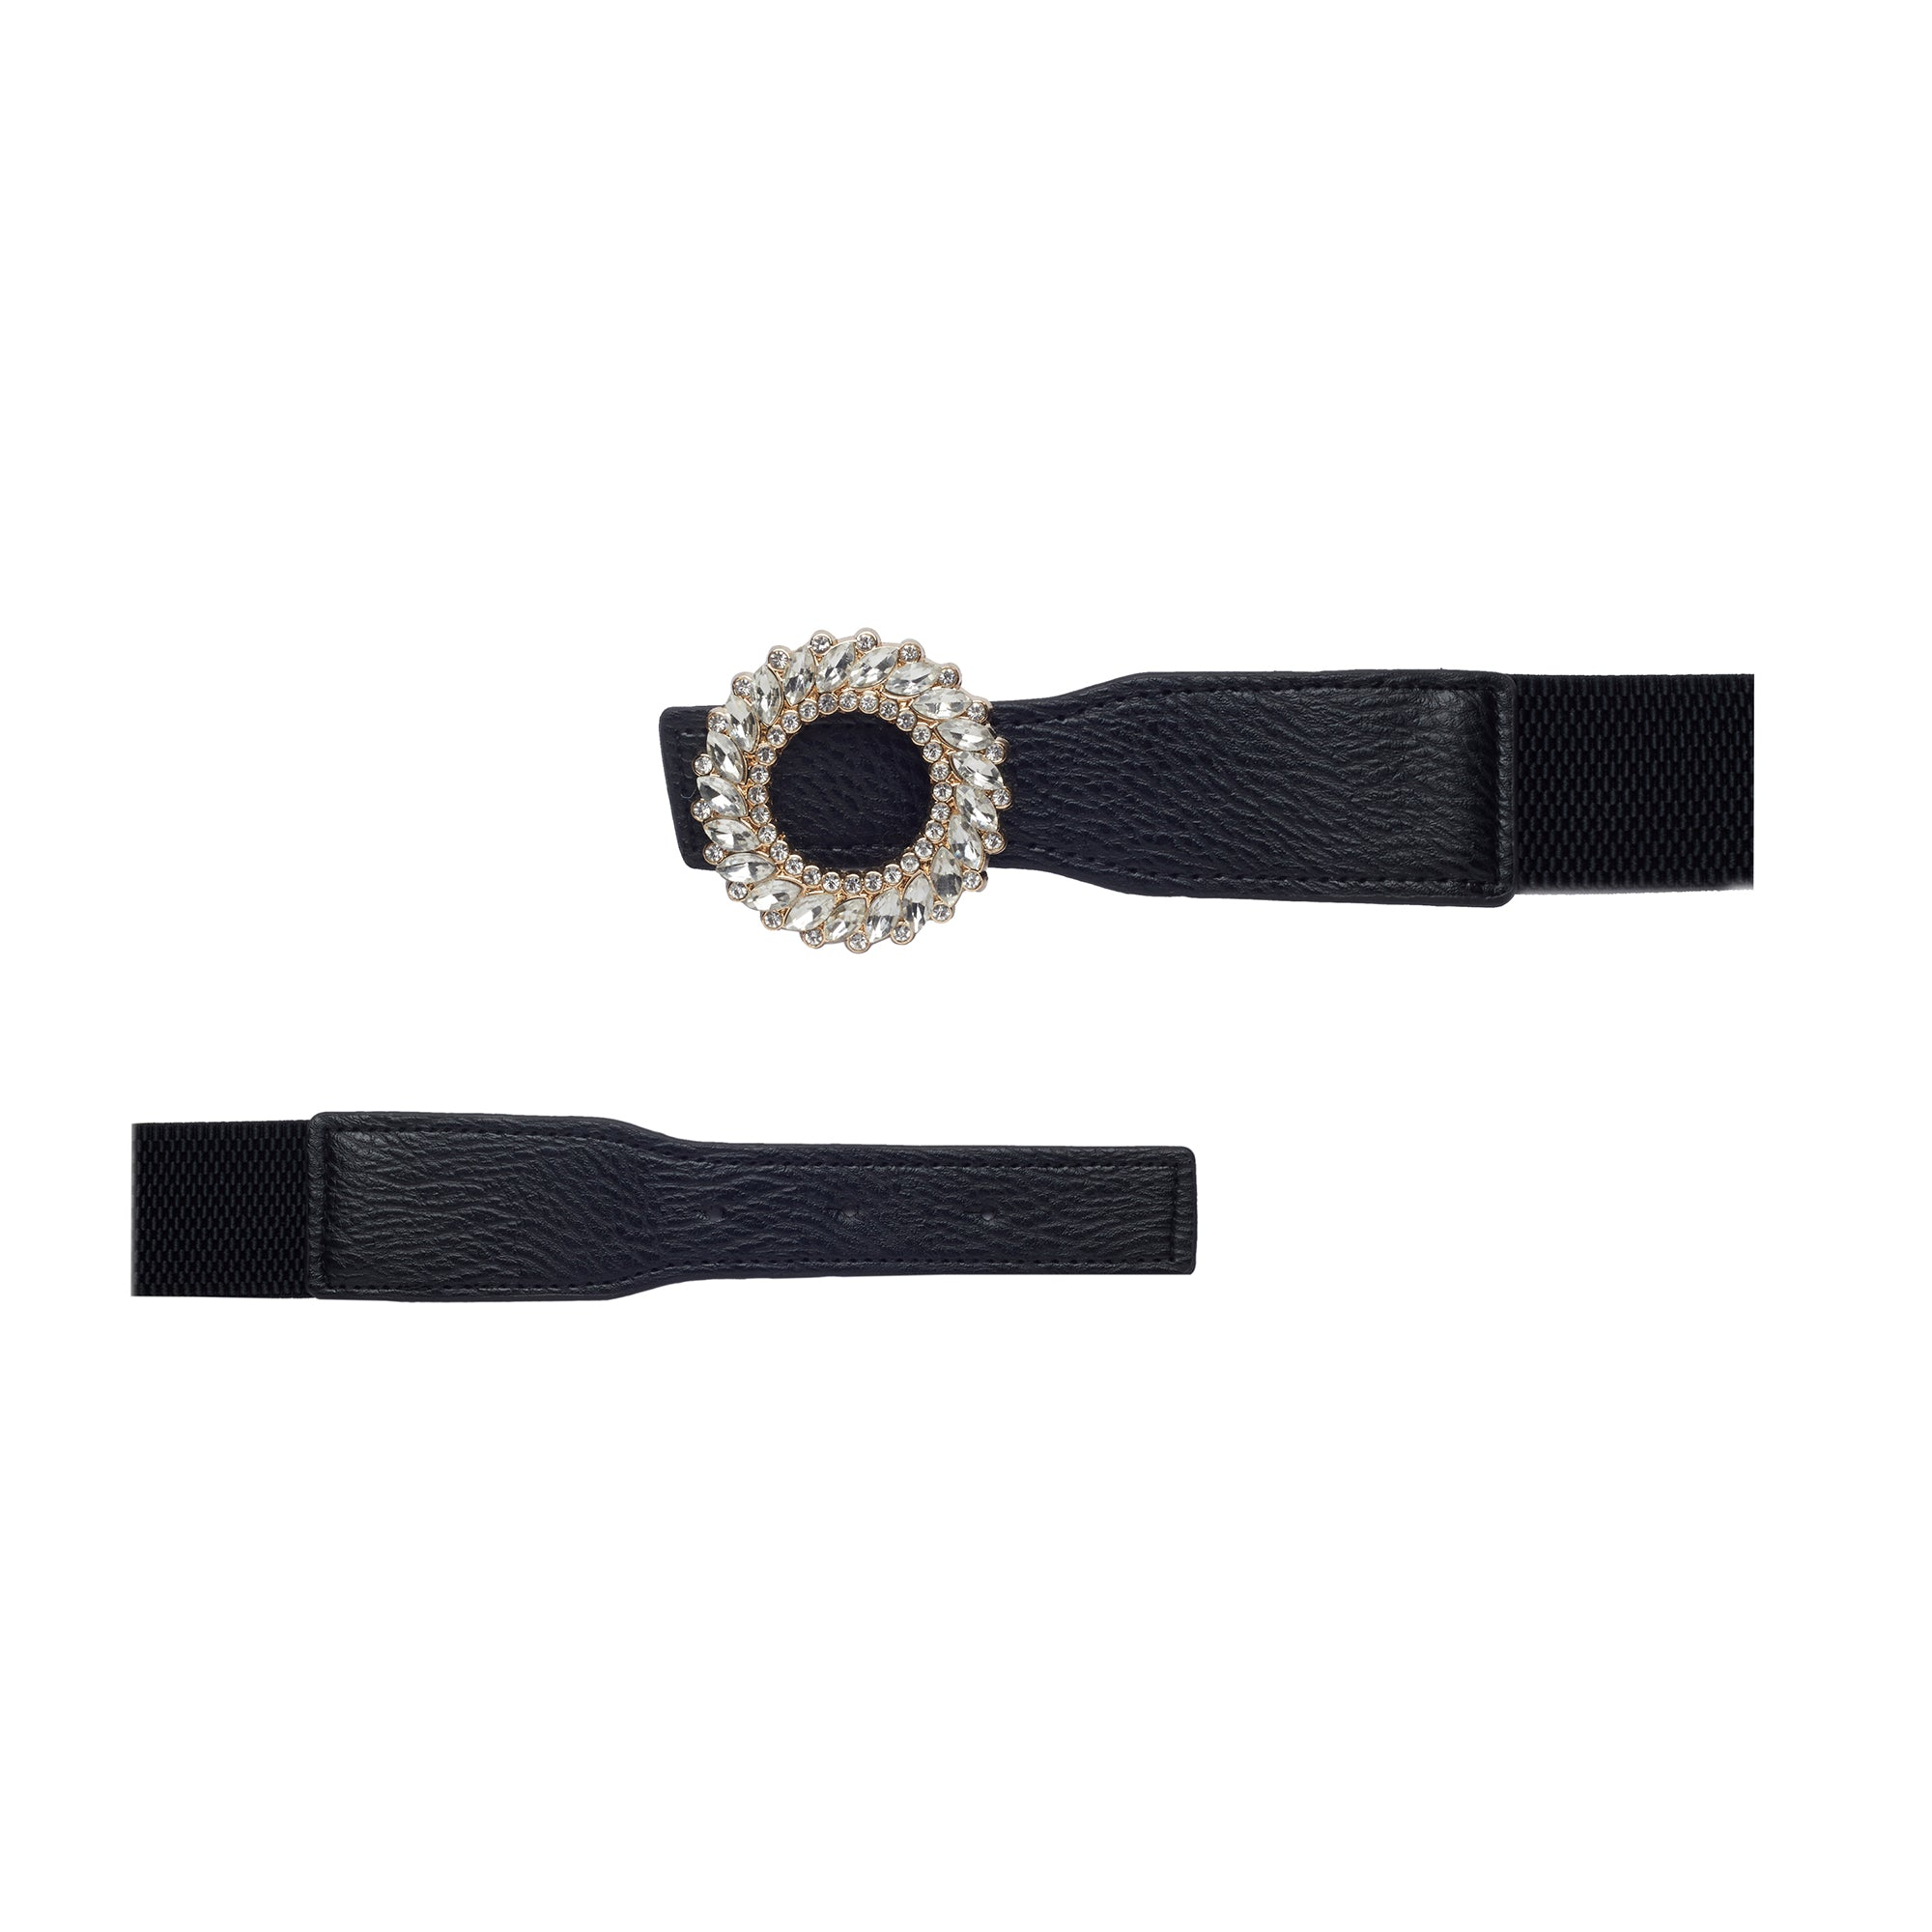 Globus Black Embellished Belt-3